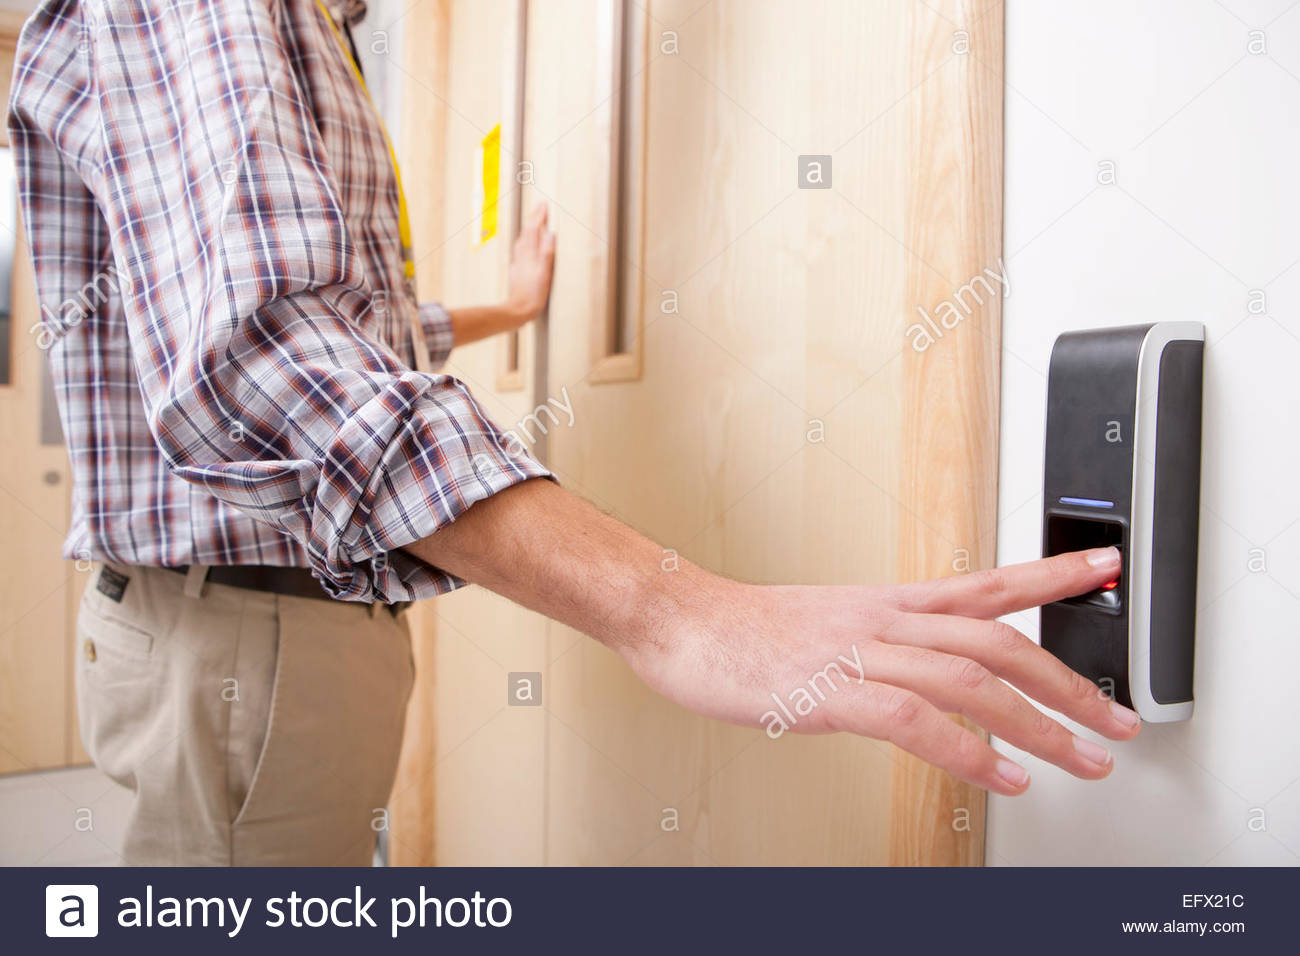 Man using finger print entry technology to open door - Stock Image